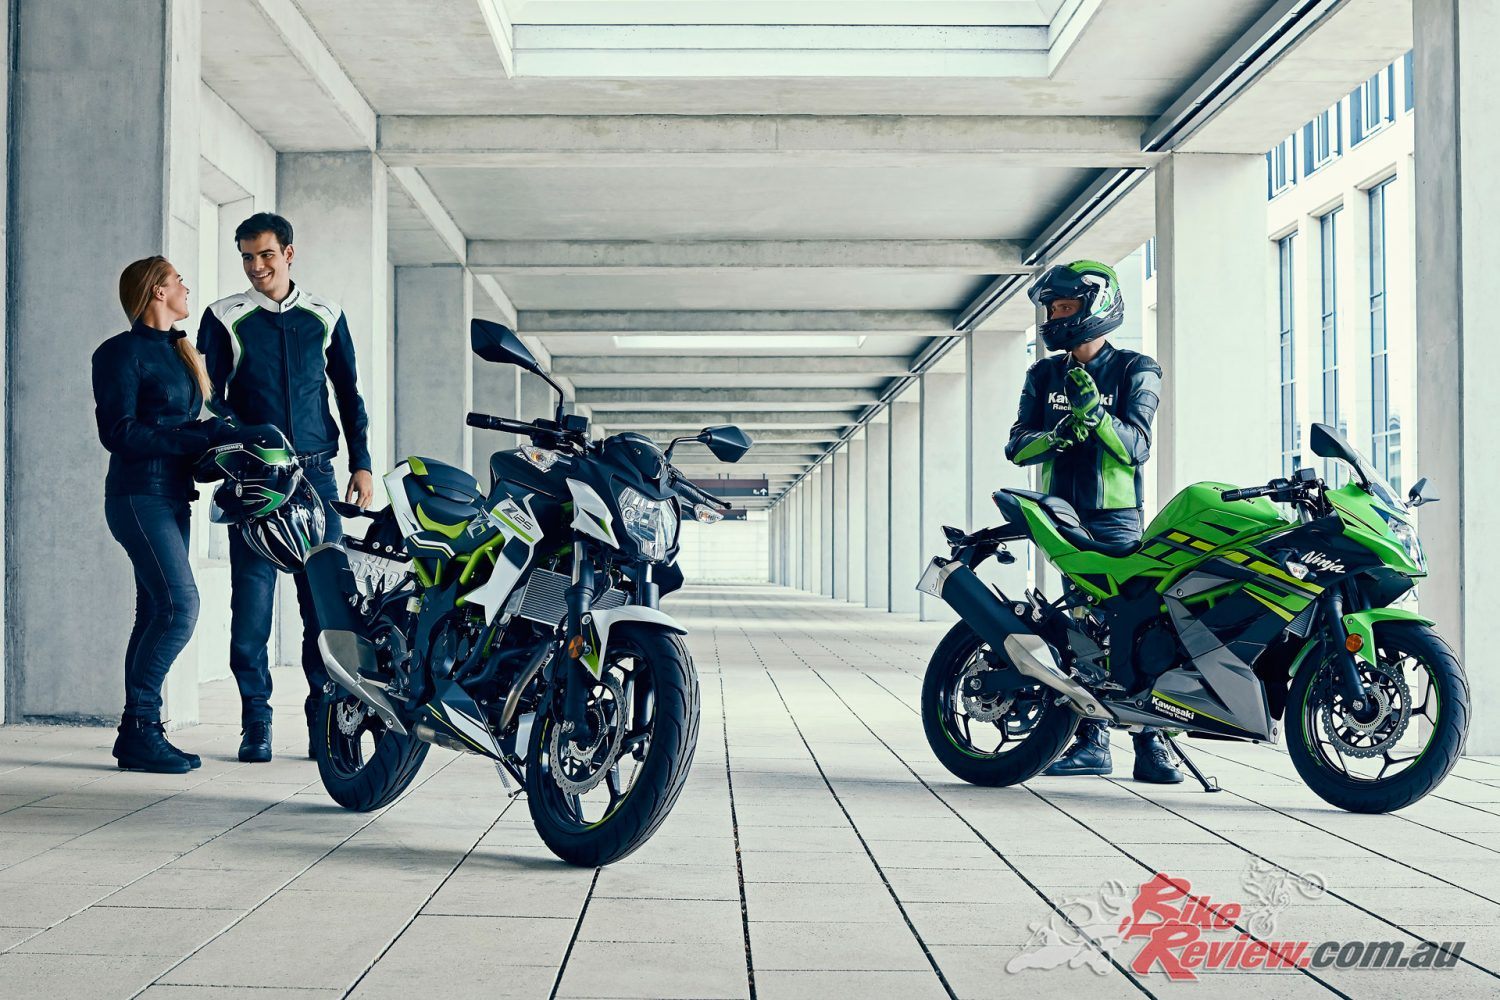 Kawasaki unveil two new 125 machines - The Ninja 125 and Z125